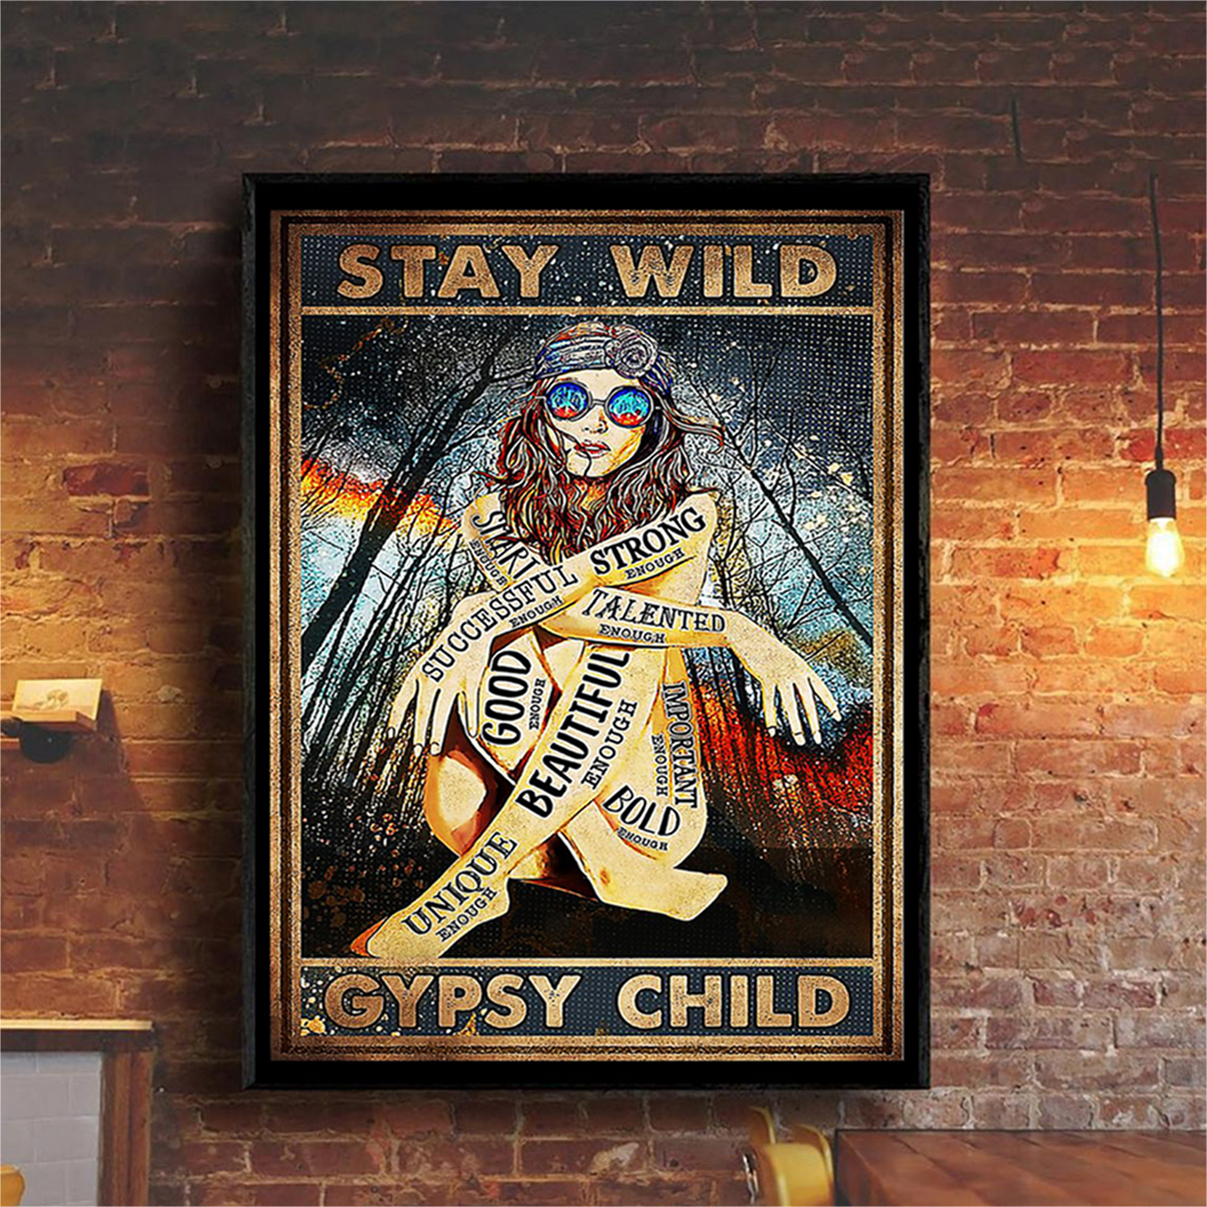 Hippie girl glasses stay wild gypsy child poster A2